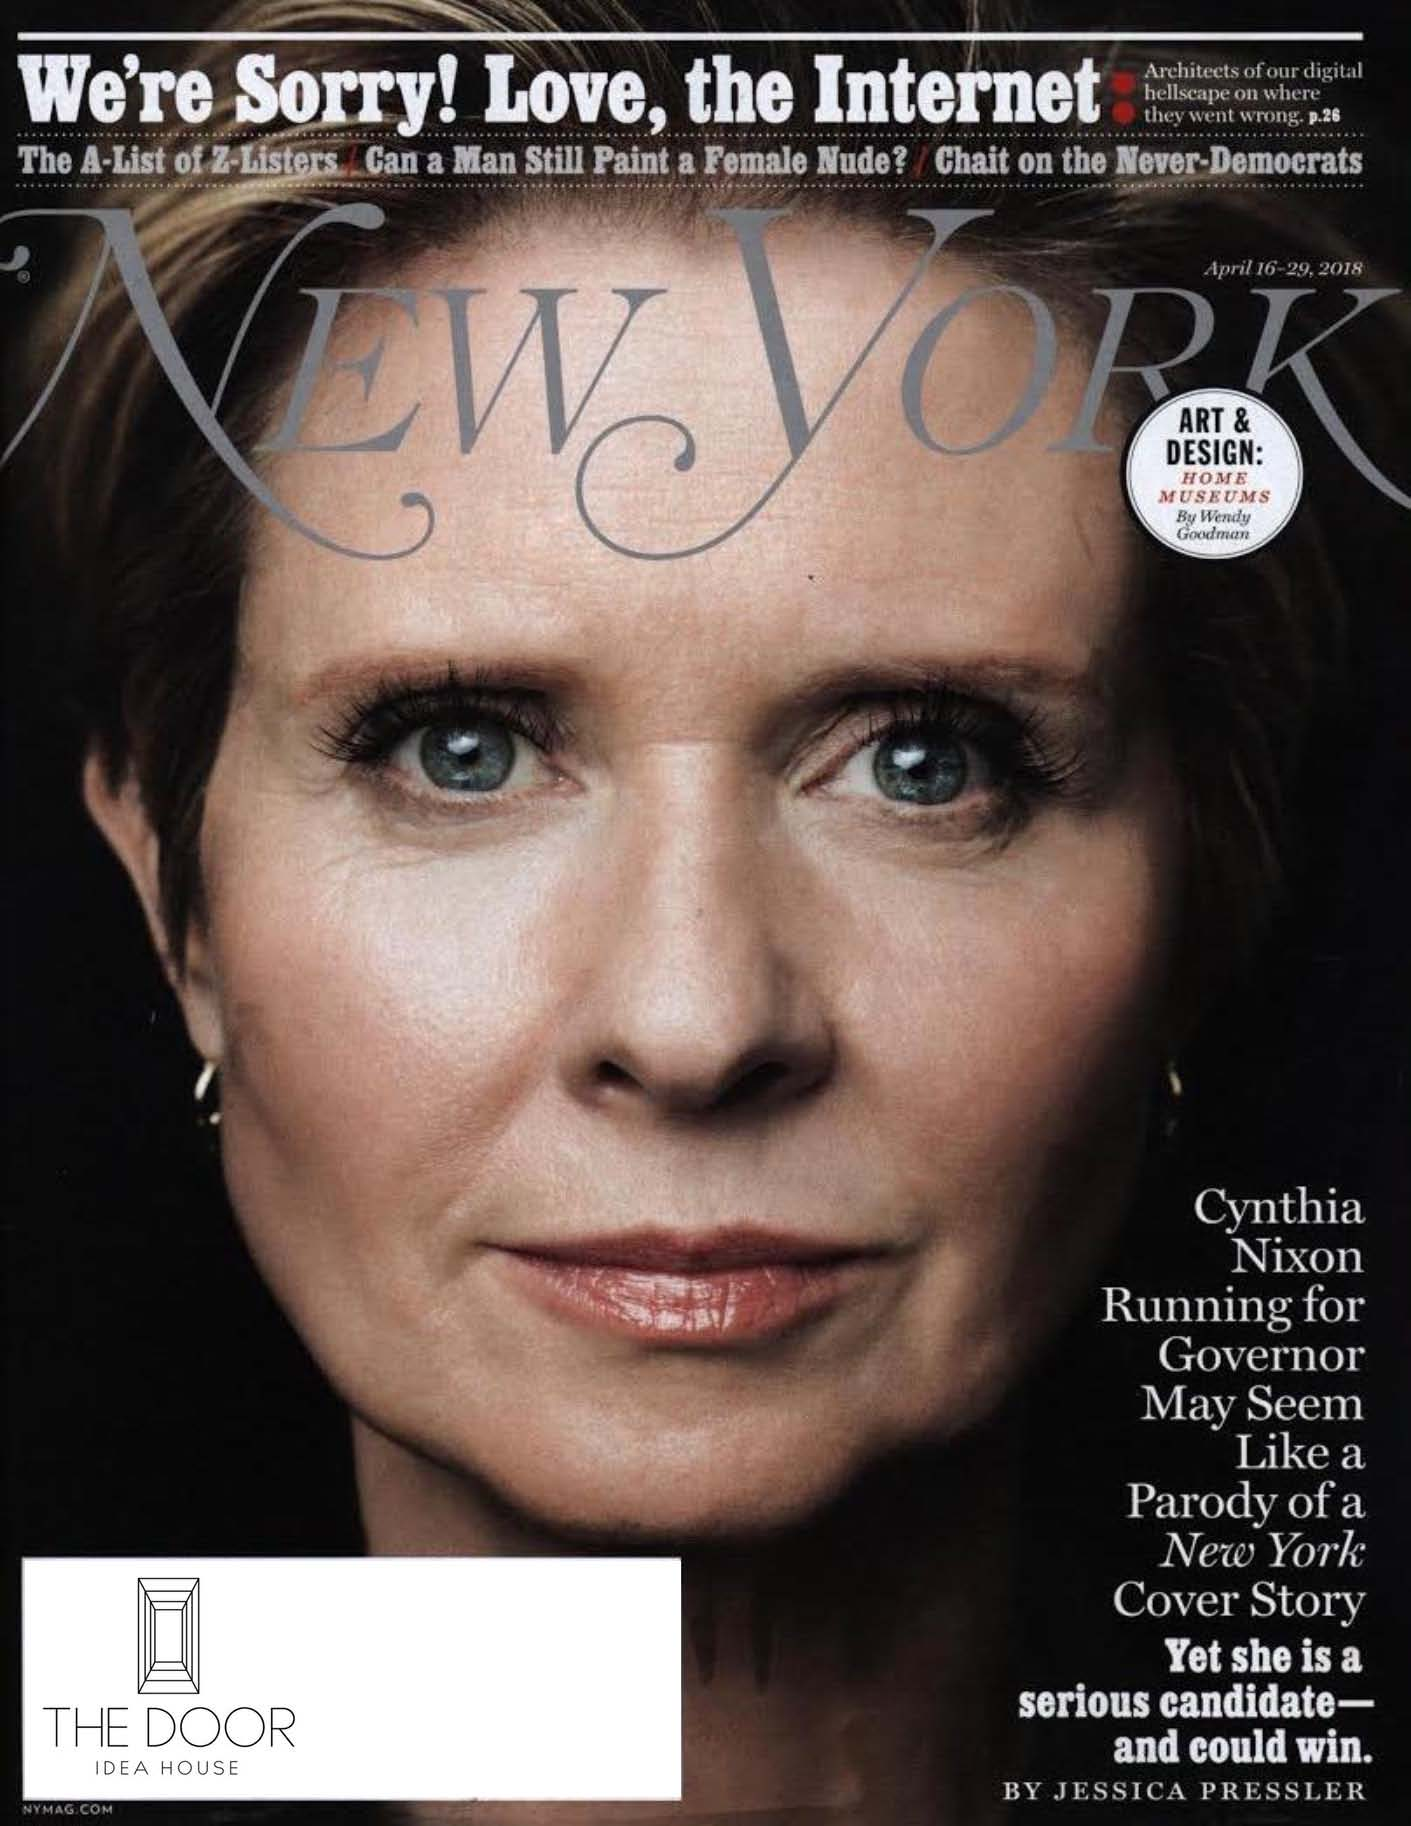 NYMag_CocoPazzo_4.17 (1)_Page_1.jpg